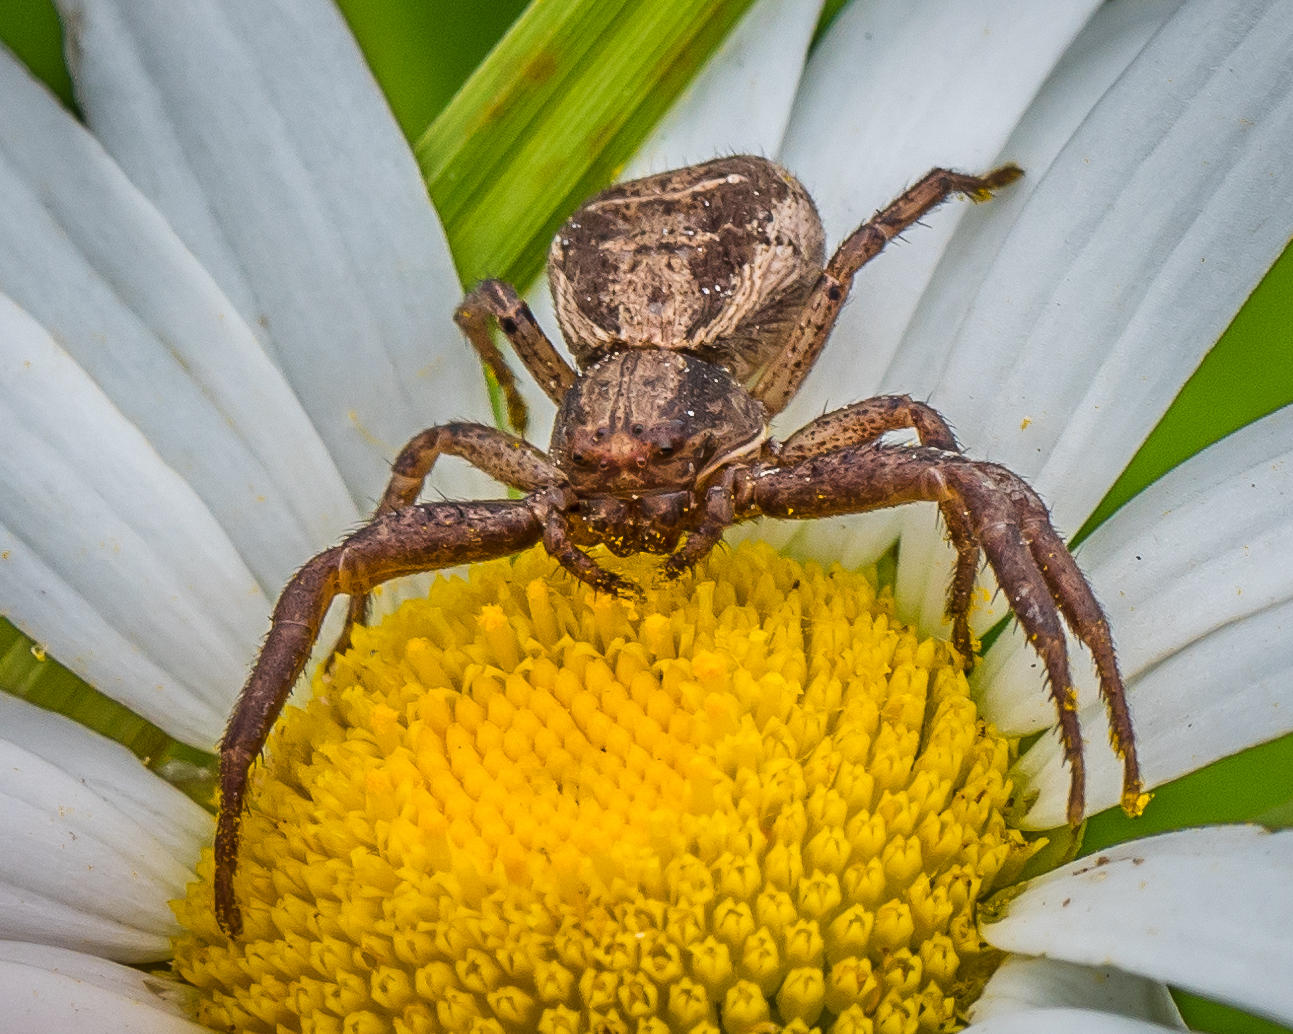 Crab spider preying bumble bee garden spiders spiders flower spiders - A Break From The Bugs